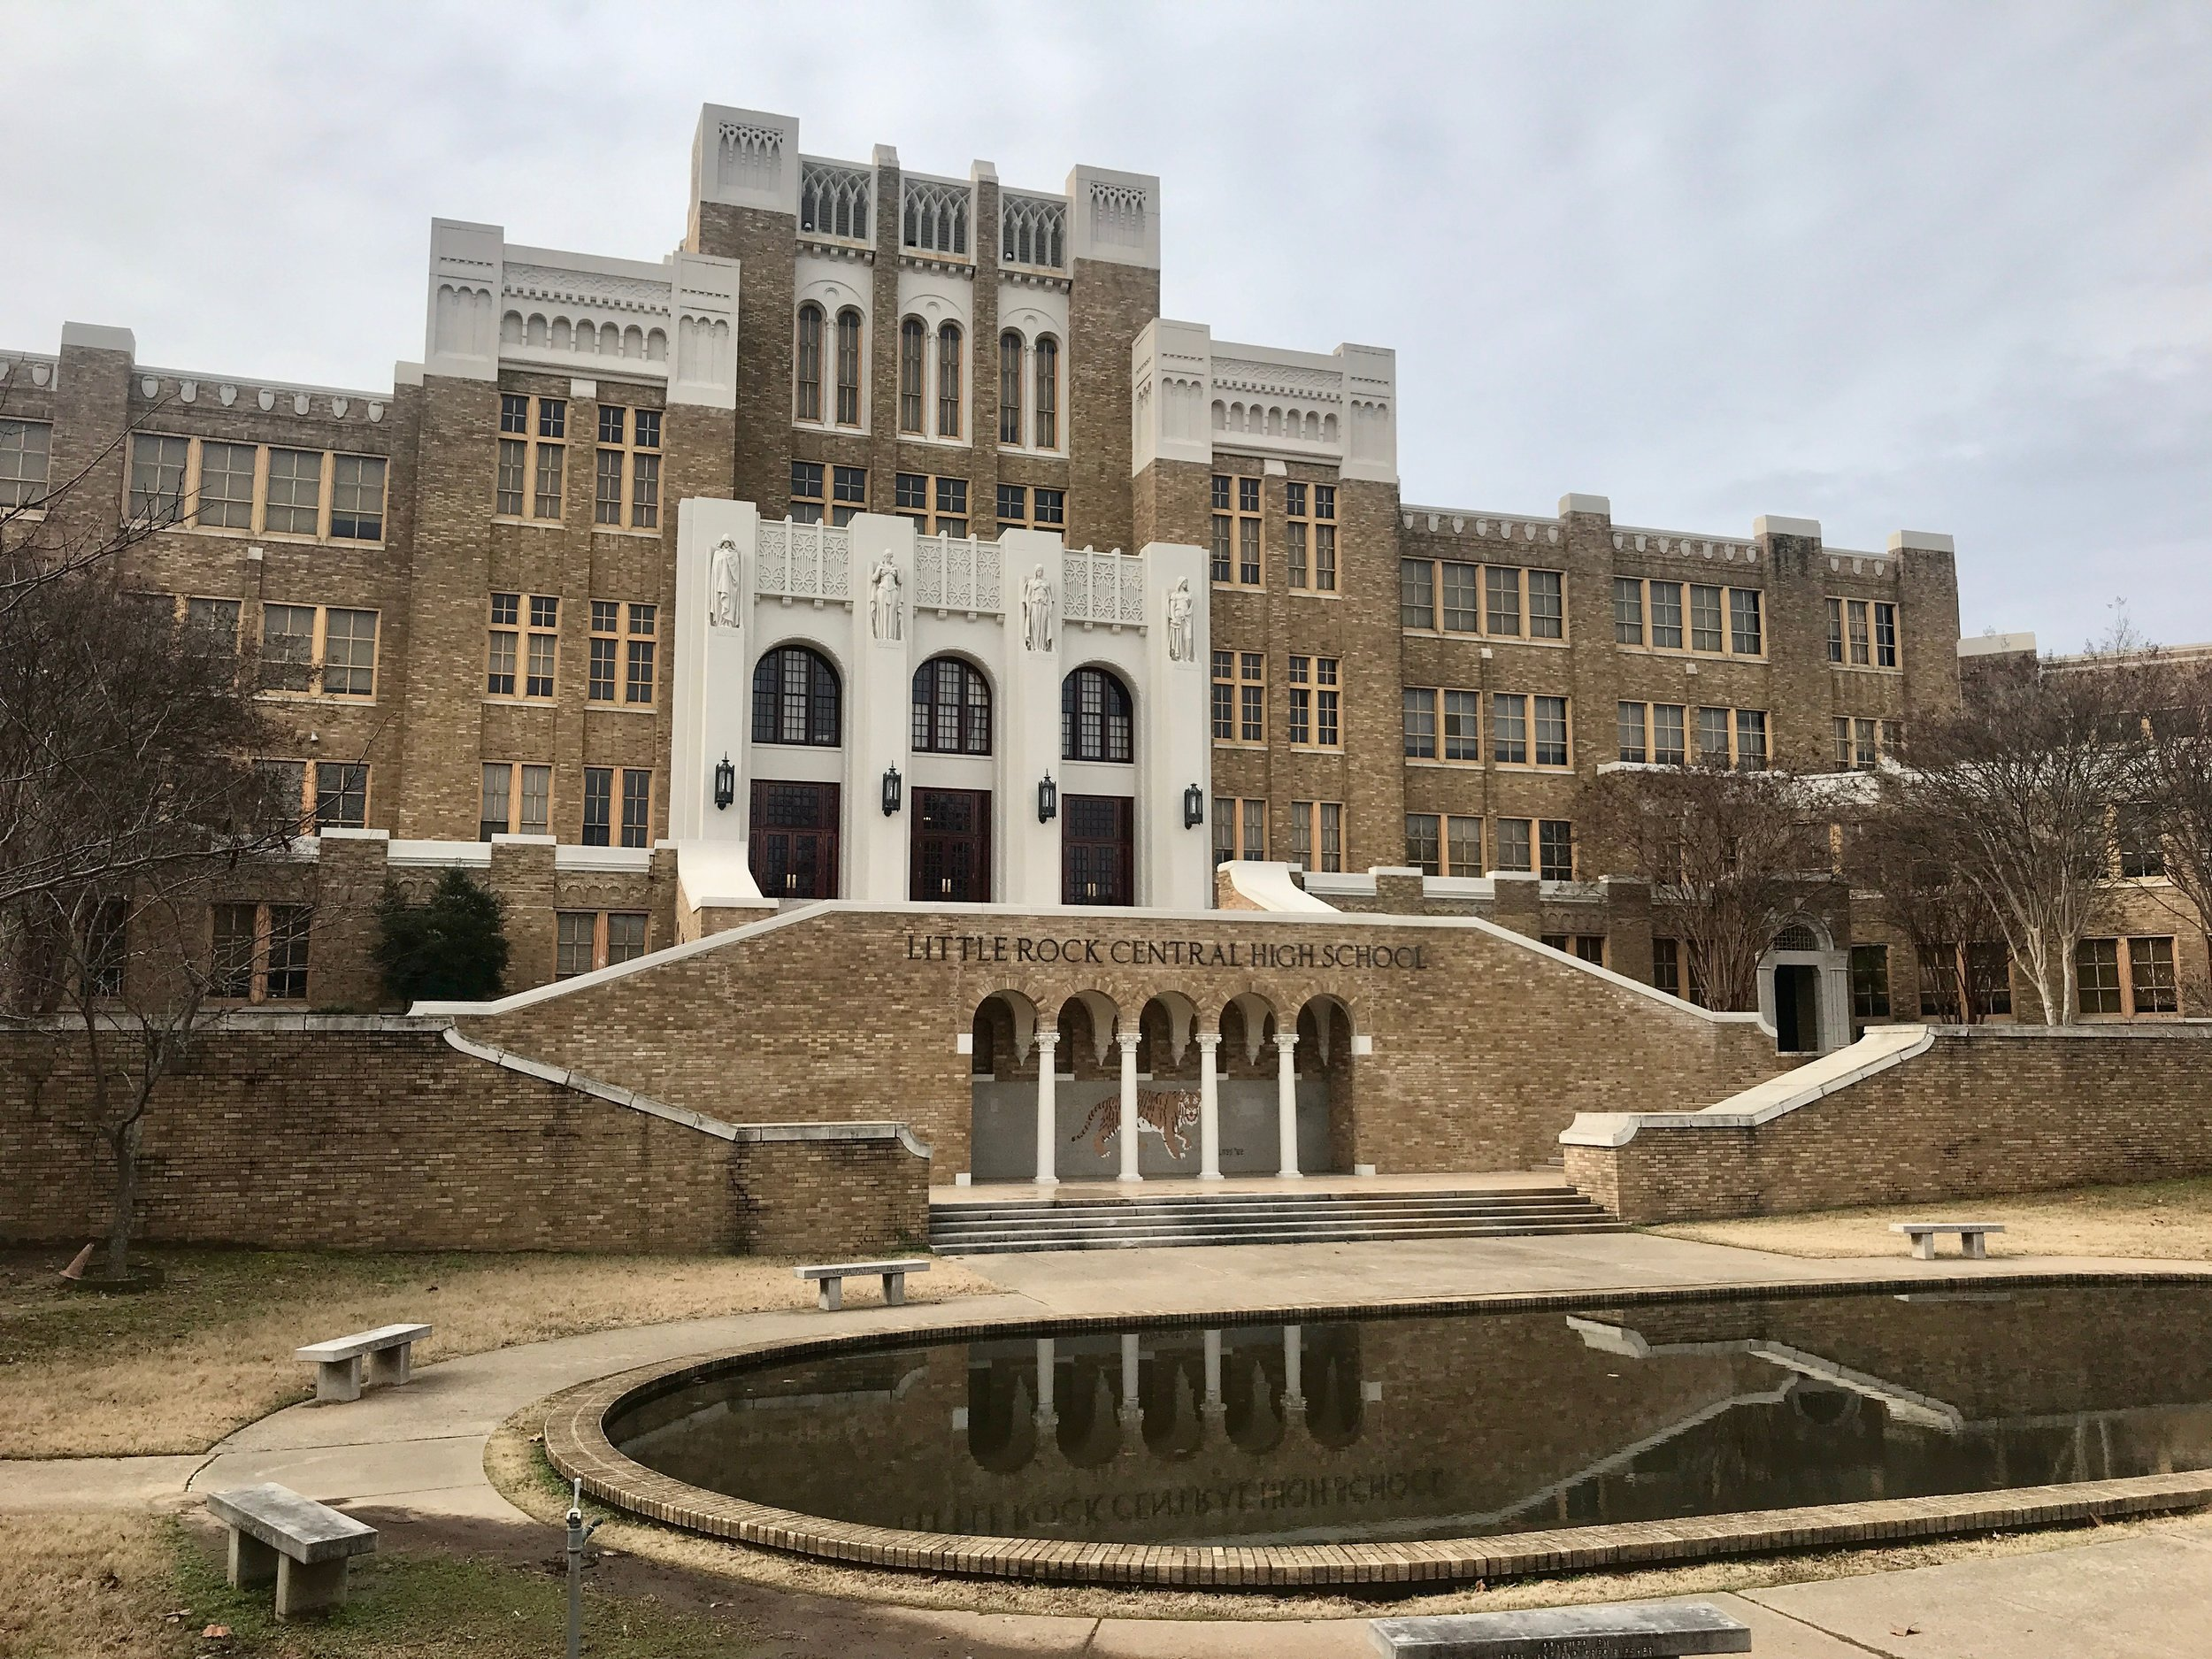 Central High School in Little Rock, Ark., site of an epic battle over school integration.